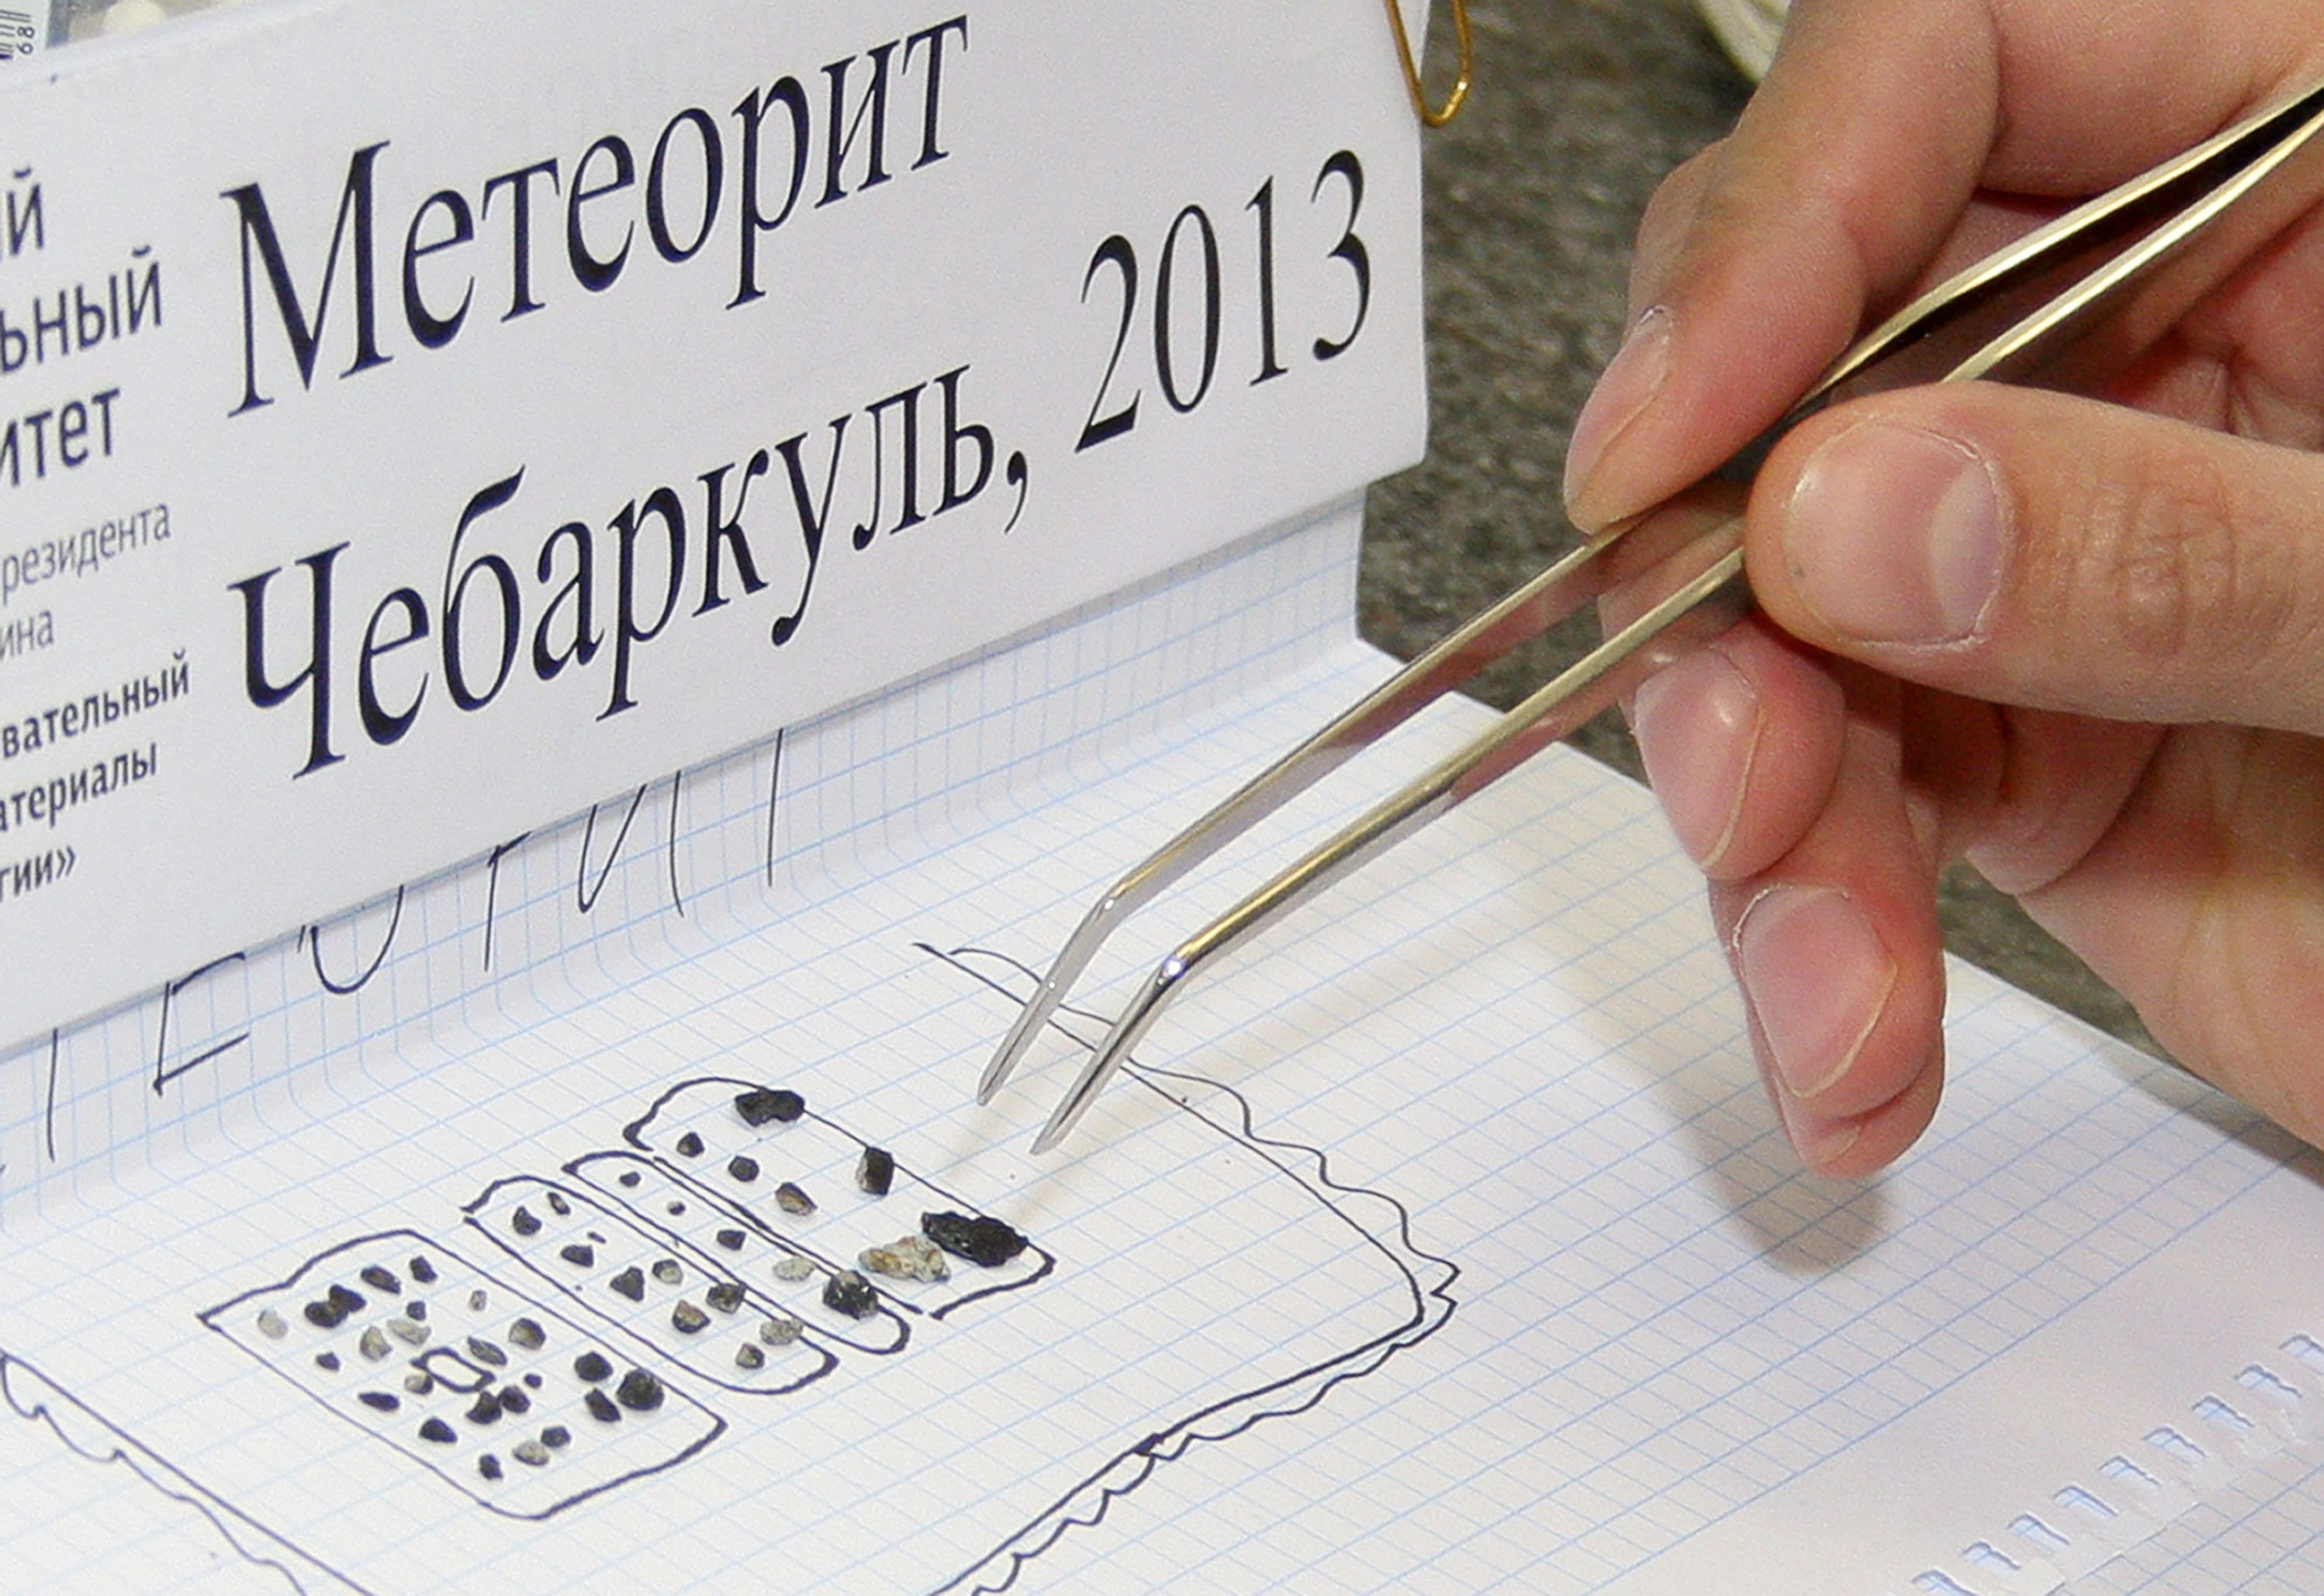 In this photo distributed by the Urals Federal University Press Service a researcher examines pieces of a meteorite in a laboratory in Yekaterinburg on Monday, Feb.18, 2013. Researchers from the Urals Federal University, based in Yekaterinburg, have determined that the small stone-like pieces found near Lake Cherbarkul in the Chelyabinsk region are pieces of the meteorite that exploded over the region Feb. 15. A total of 53 pieces have been brought for analysis to the university in Yekaterinburg. The largest one is one centimeter in diameter, the smallest is about one millimeter. It is written in Cyrillic: Meteorite Chebarkul. (AP Photo/ The Urals Federal University Press Service, Alexander Khlopotov)